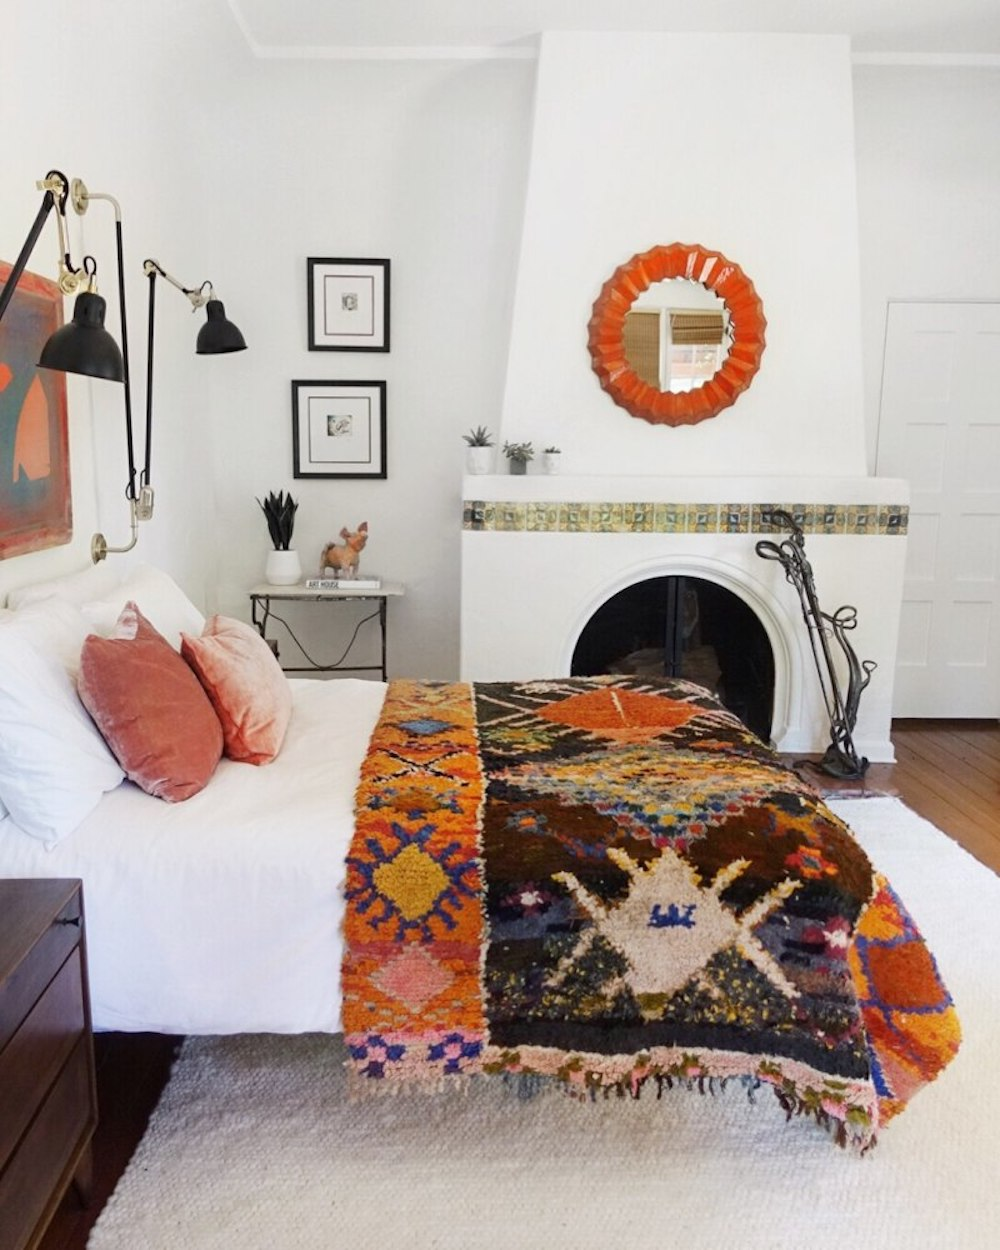 6 Unexpected Ways to Decorate With an Area Rug